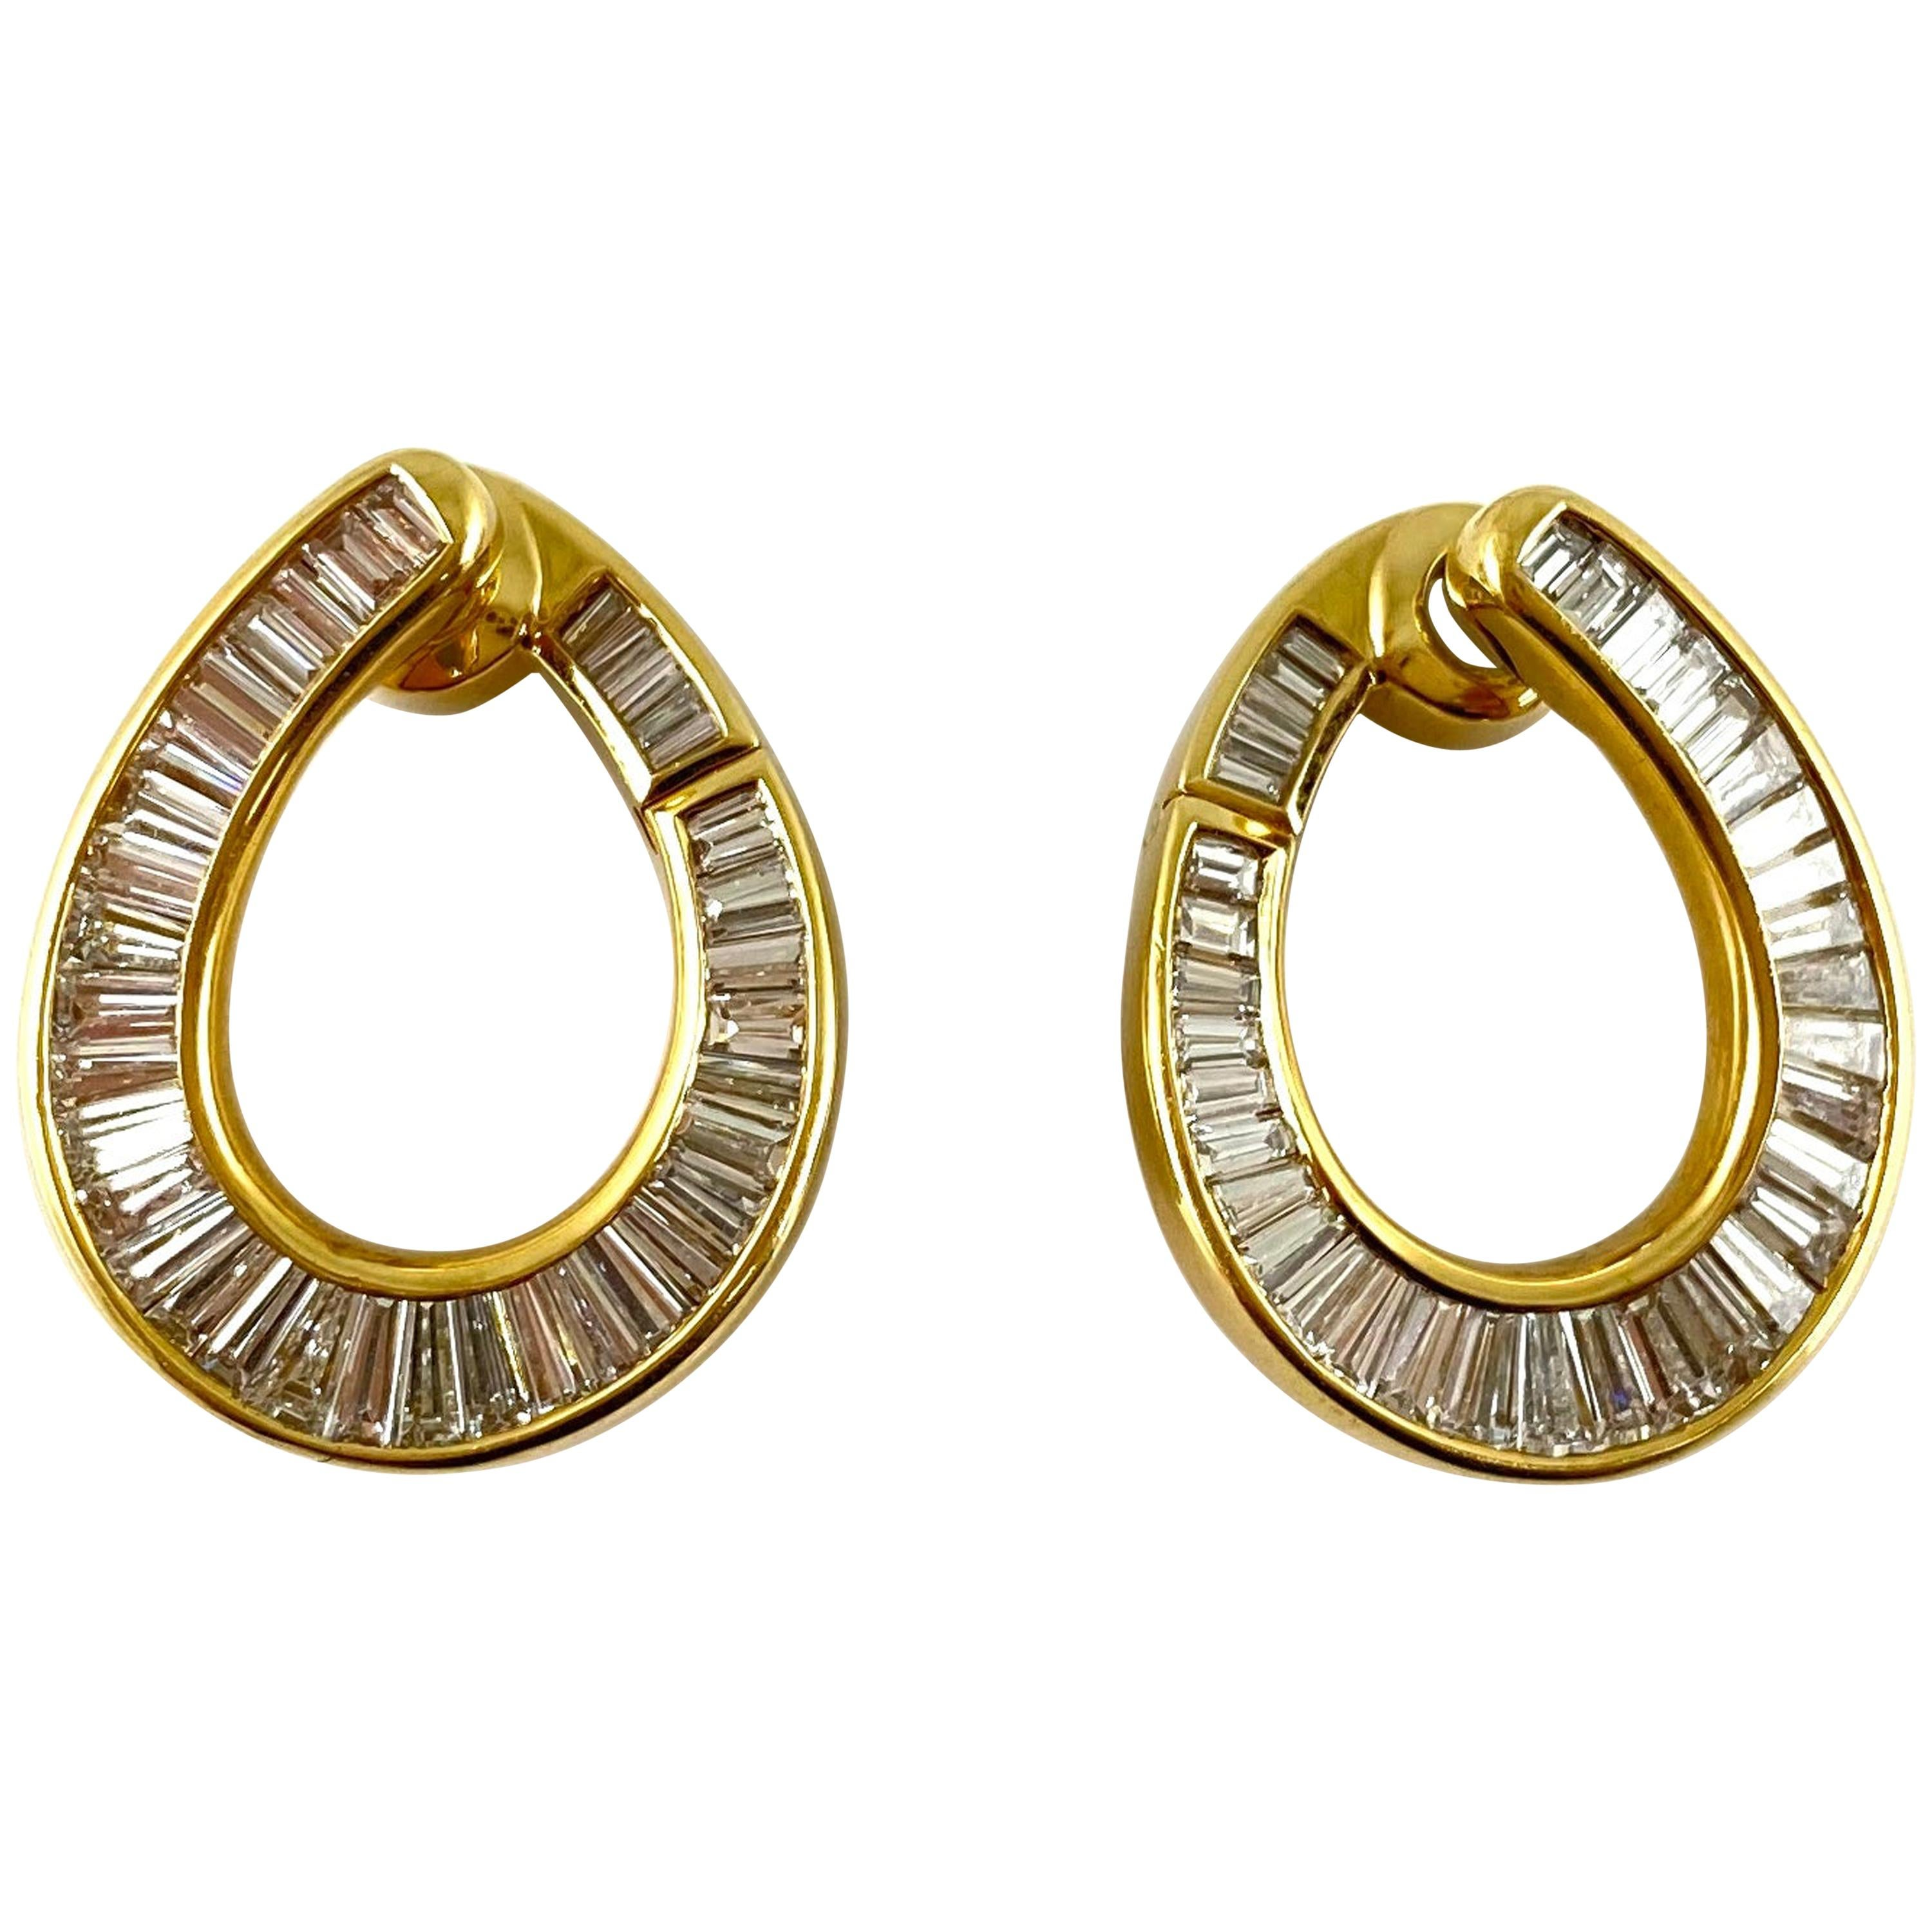 1980s 18 Karat Yellow Gold Small Hoop with Emerald Cut Diamonds Earrings